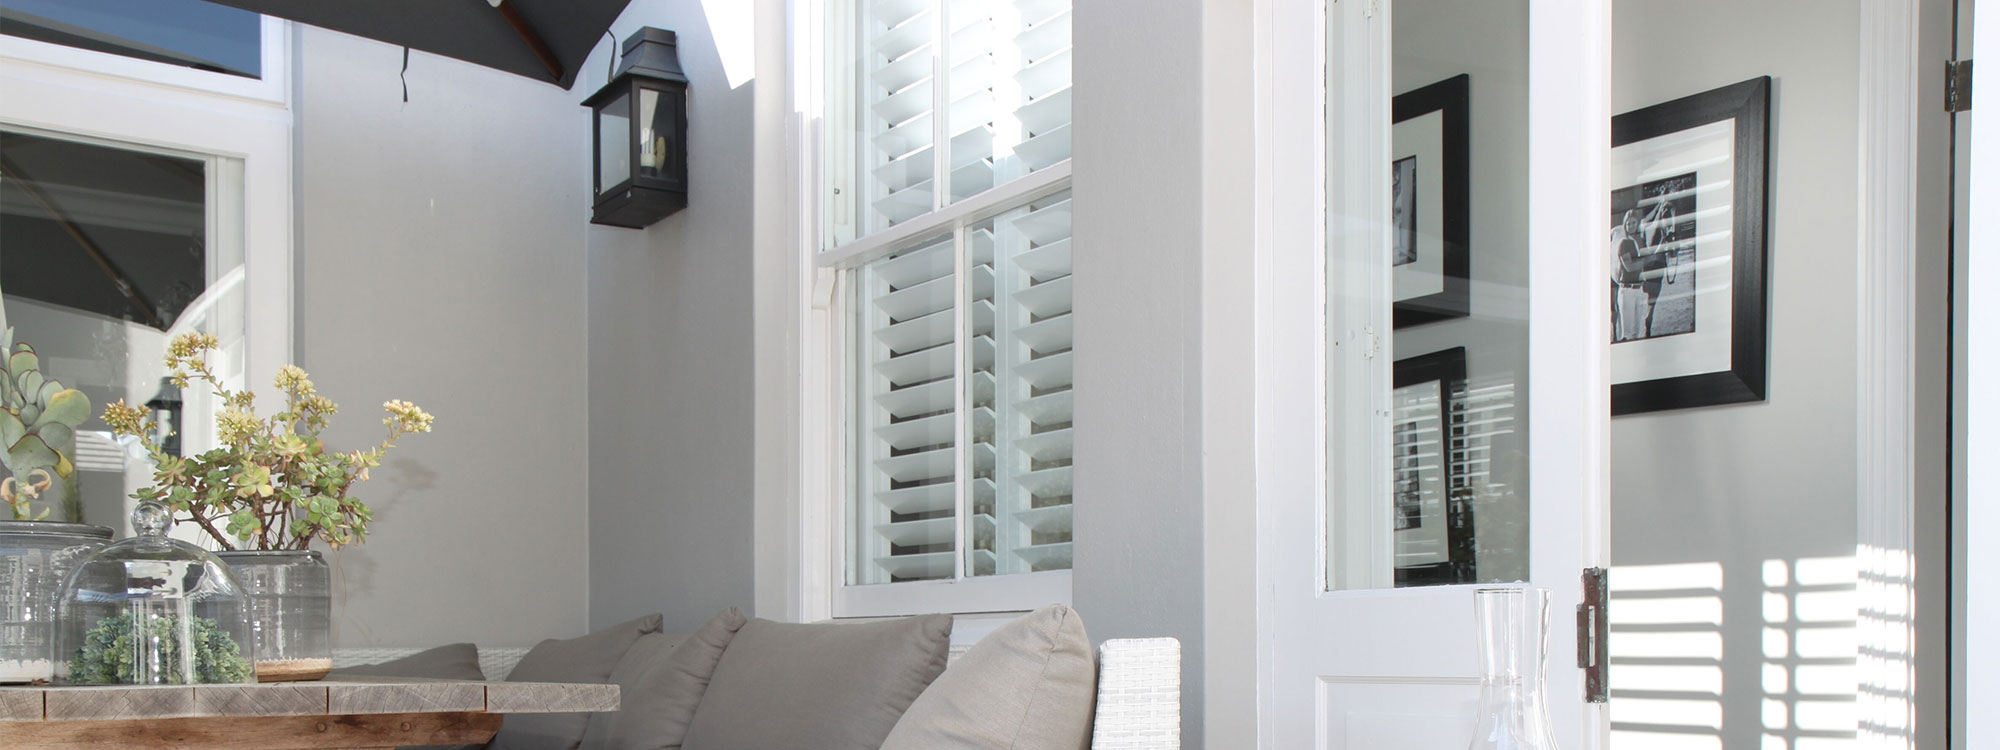 Decowood-shutters-white-living-area-outside-window